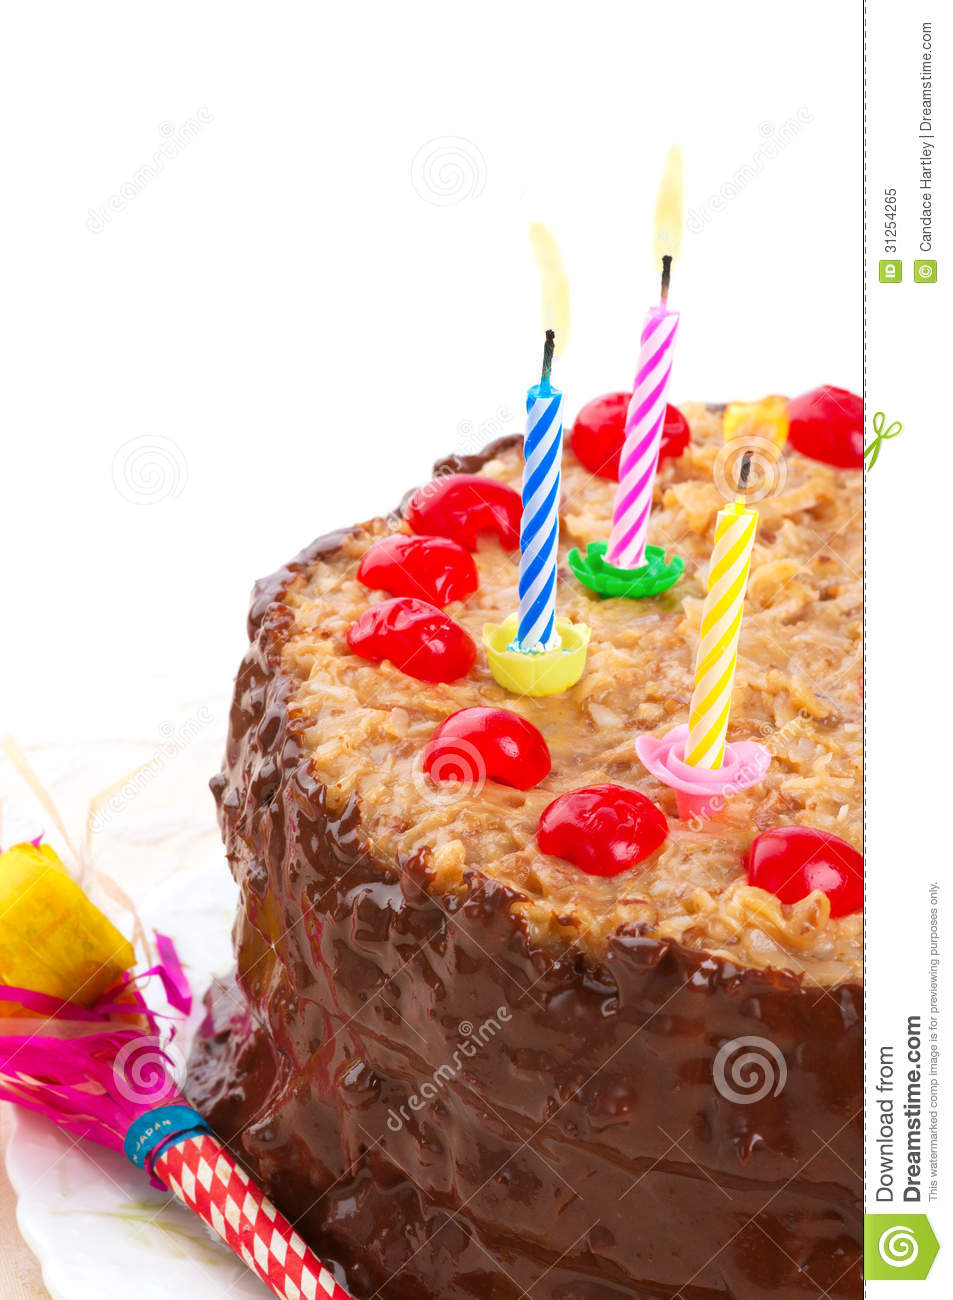 German Chocolate Birthday Cake With Lighted Candles Stock